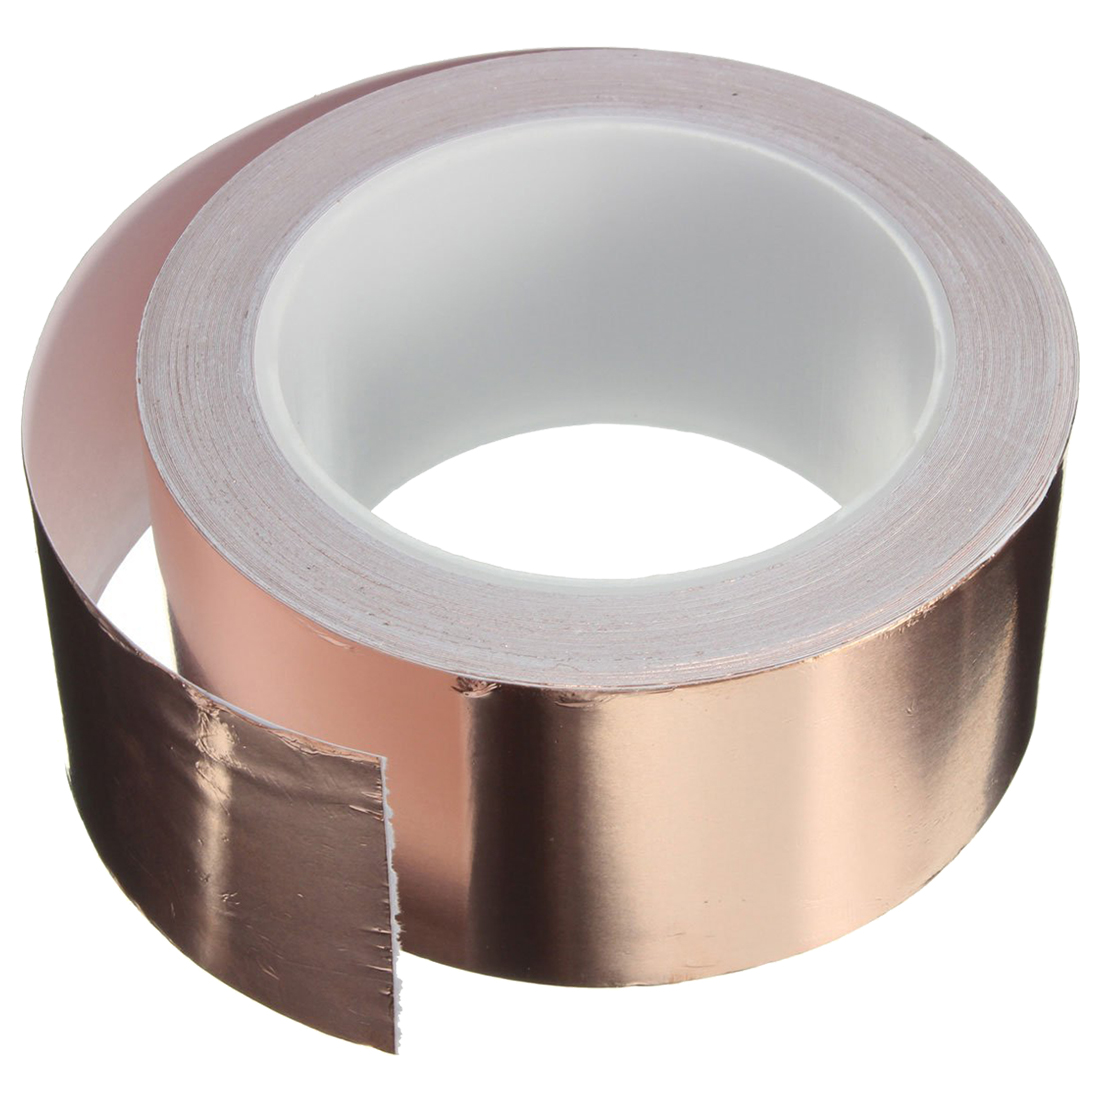 SALES 5xCopper Foil Tape - (50mm x 20m) - EMI Shielding Conductive Adhesive for Stained Glass,Paper Circuits,Electrical Repairs julie hansen m sales presentations for dummies